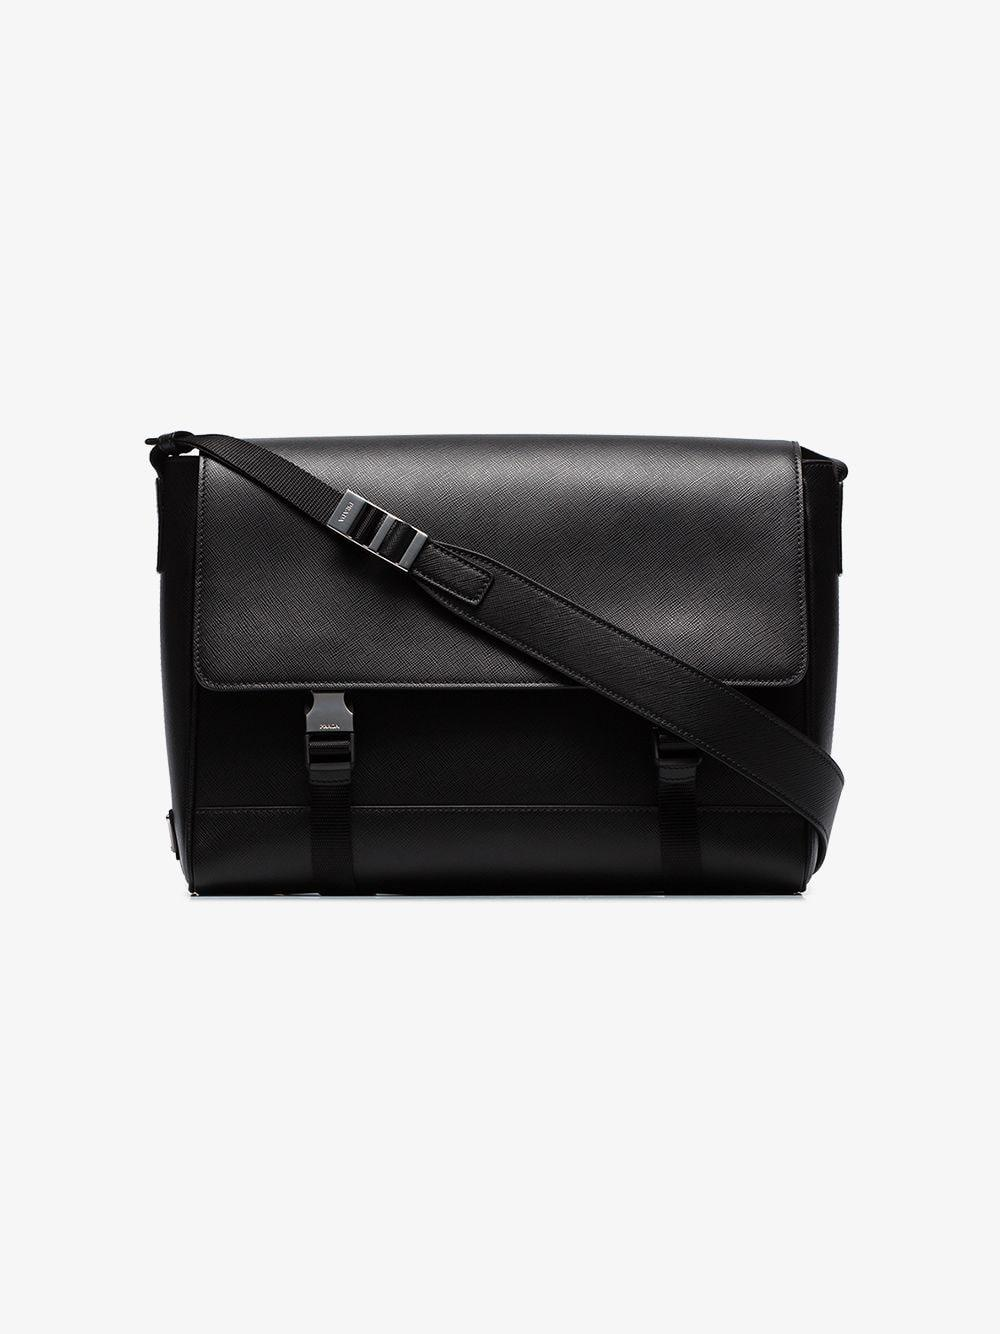 bdd88c7e2f0c Lyst - Prada Saffiano Leather Shoulder Bag in Black for Men